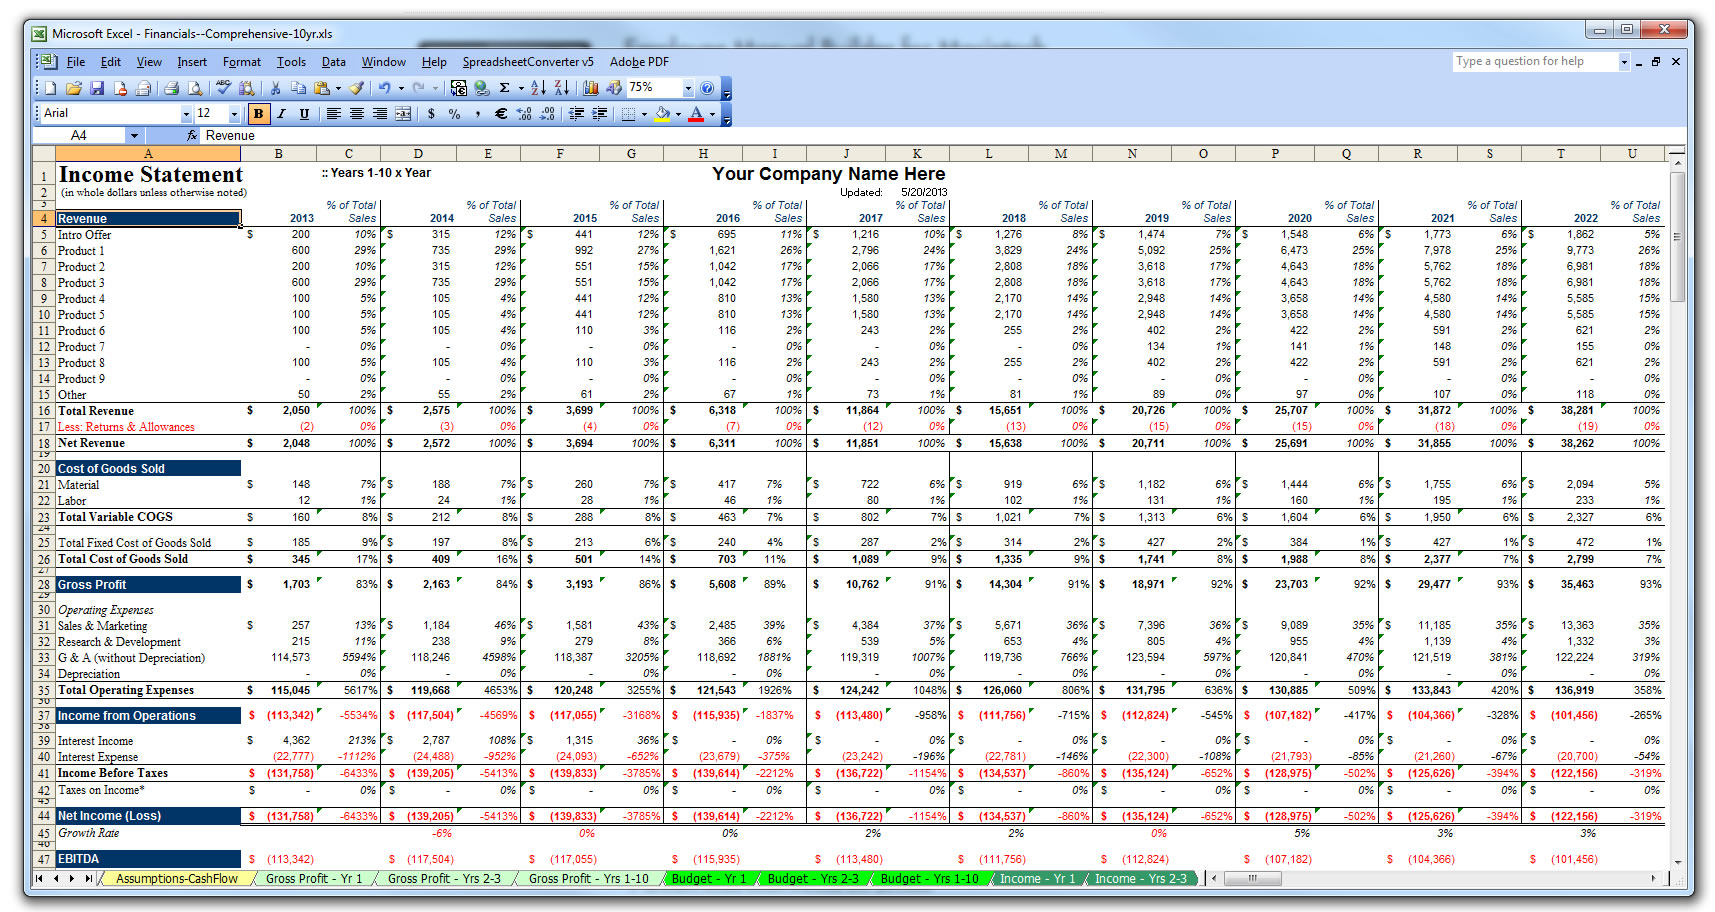 Year Business Plan Financial Budget Projection Model In Excel - Business plan model template